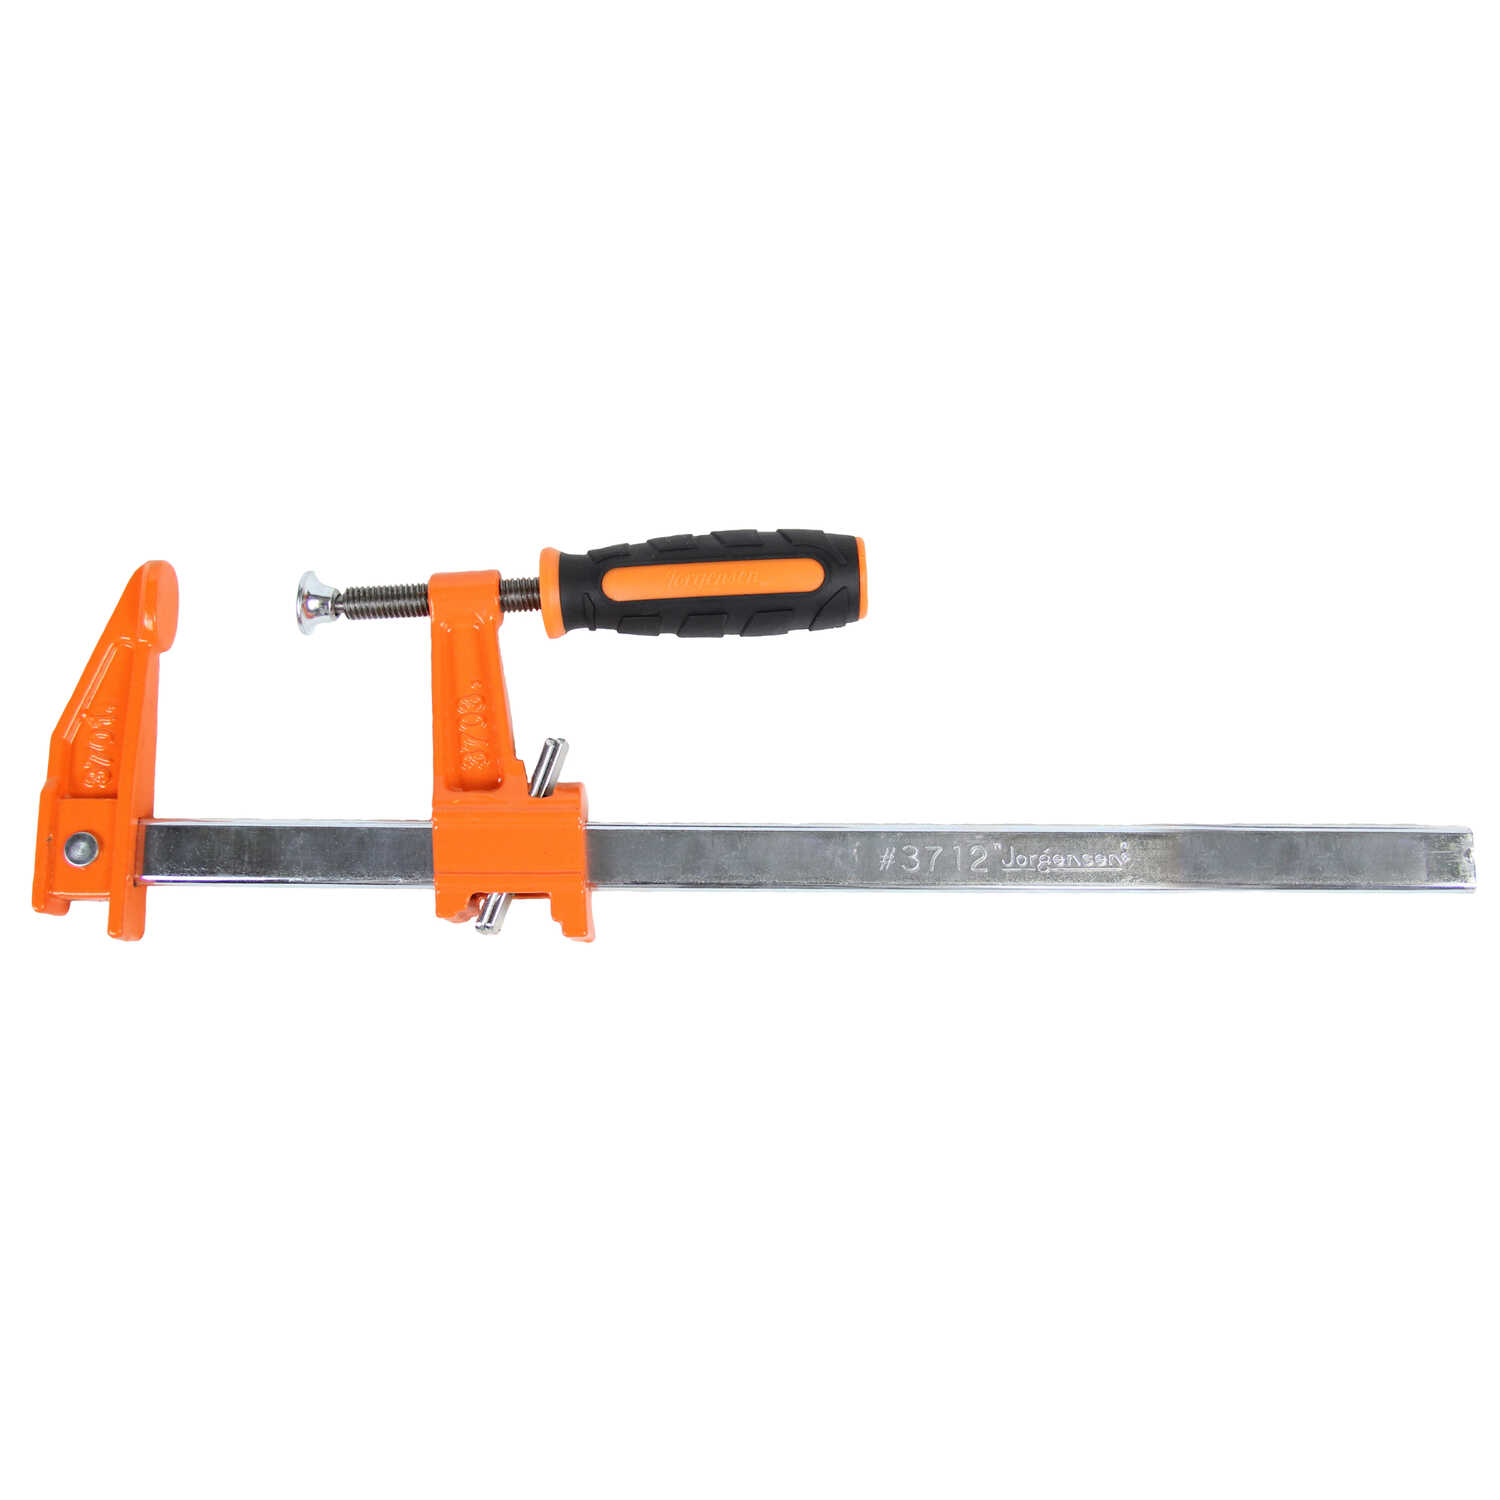 Bessey  18 in.  x 2-1/2 in. D Cast Iron/Steel  Bar Clamp  600 lb. 1 pc.